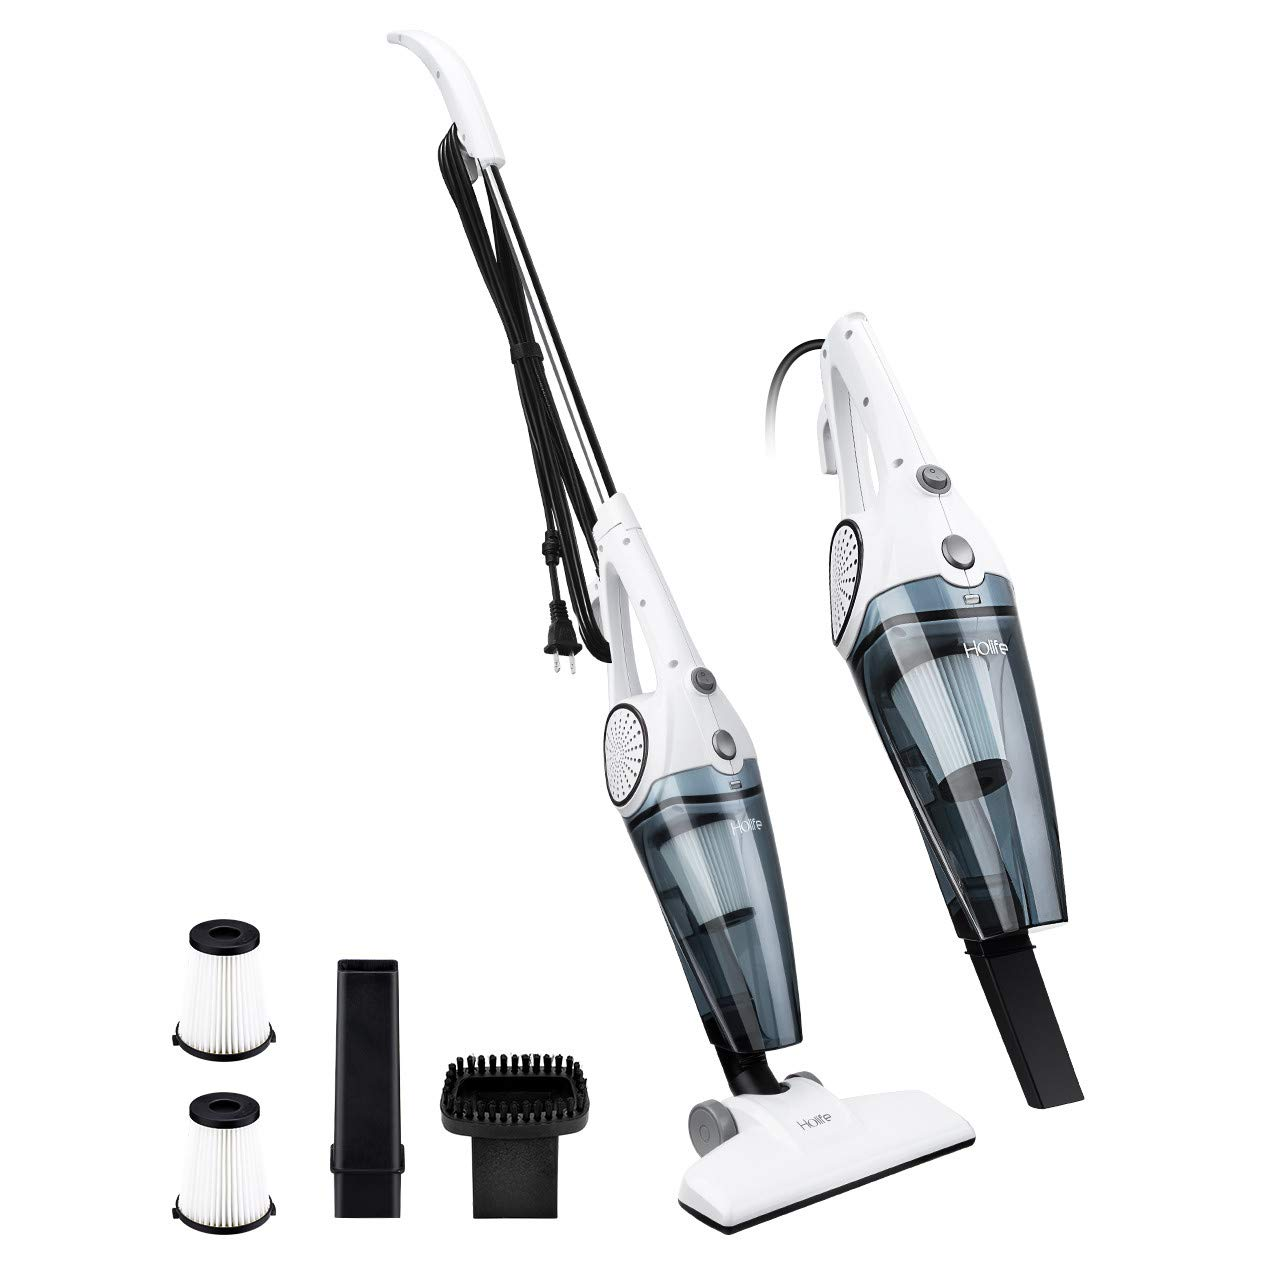 HoLife Stick Vacuum and Handheld Vacuum 2-in-1, Corded Vacuum Cleaner Lightweight Bagless Stick Hand Vacuum Cleaner, 12Kpa Strong Suction for Home Floor Dog Cat Pet Hair Dust Cleaning, 2 HEPA Filters